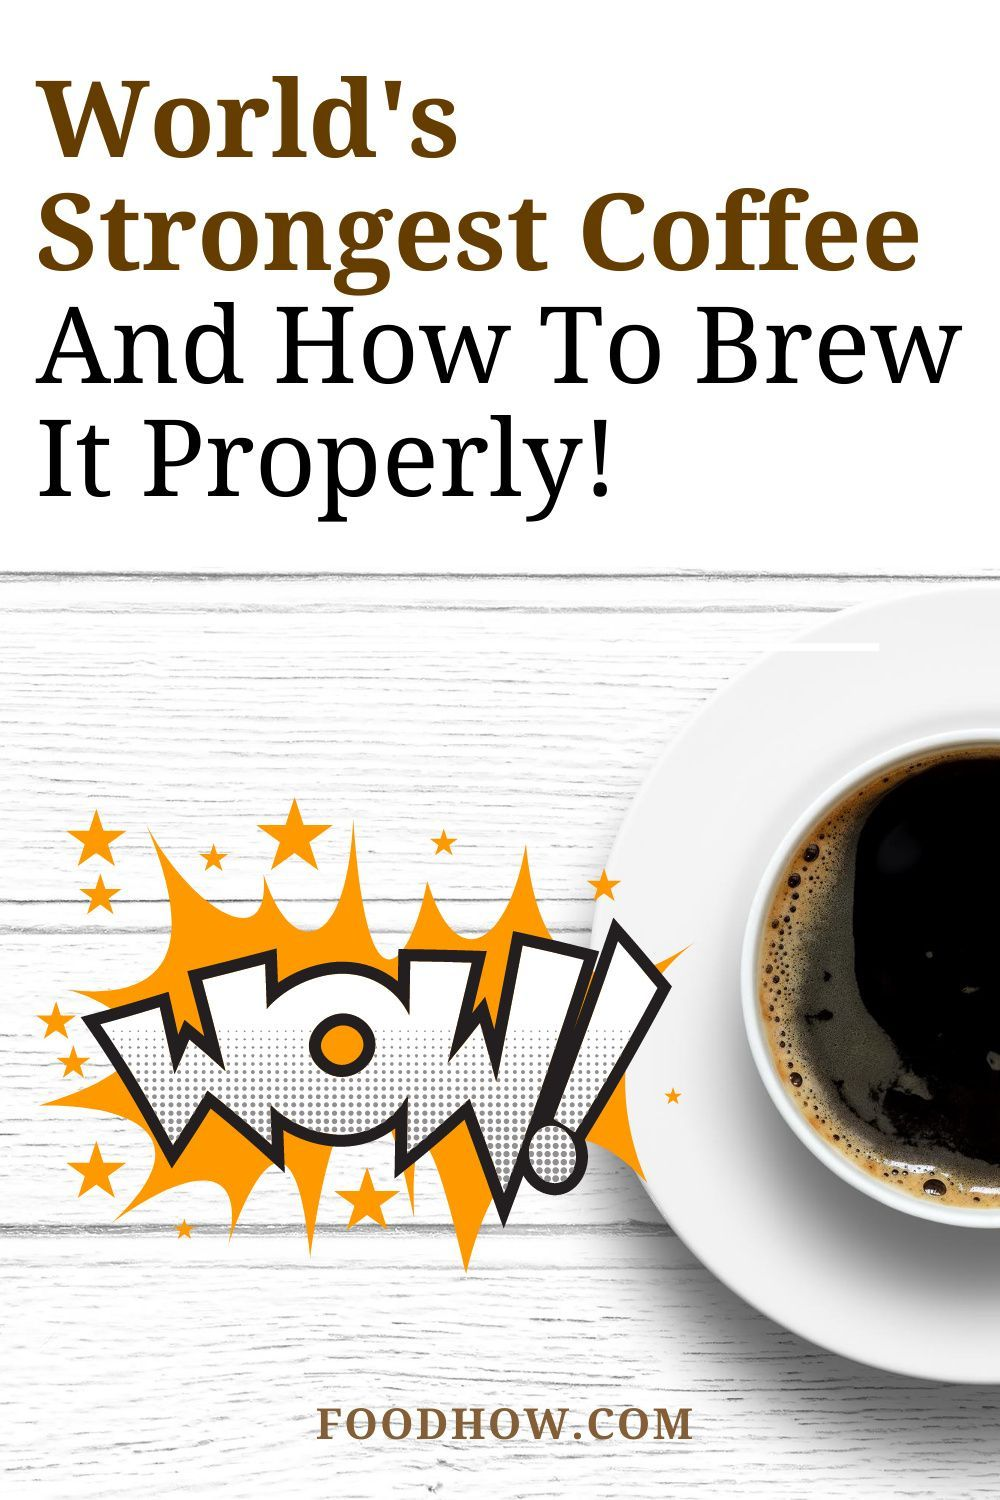 How To Get Rid Of The Caffeine In Your Body